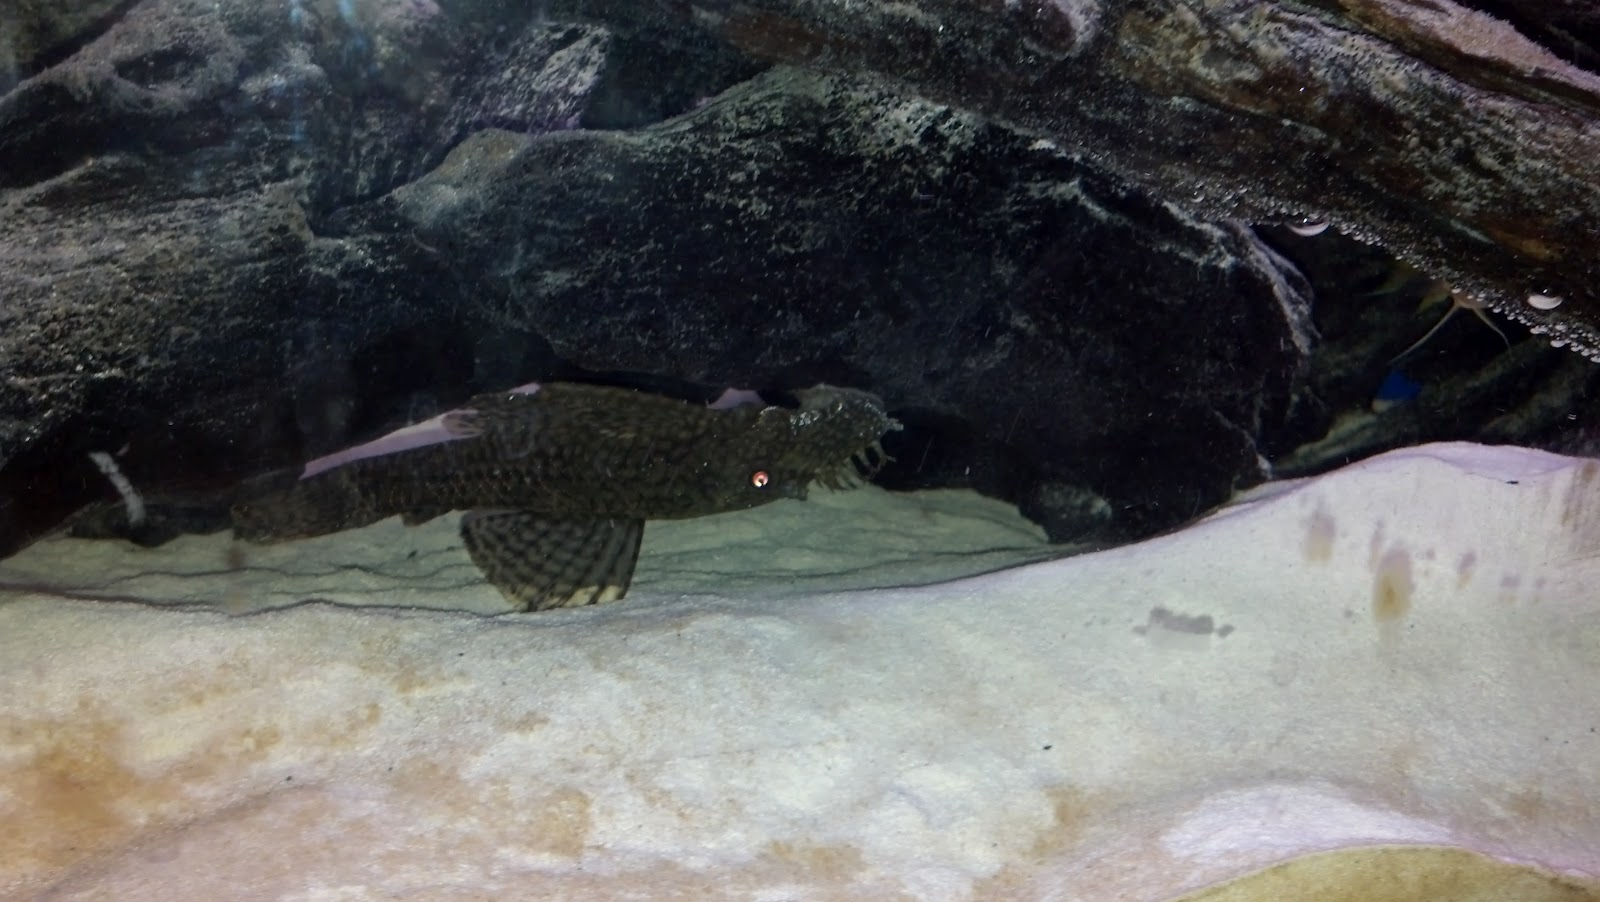 Biggest Pleco